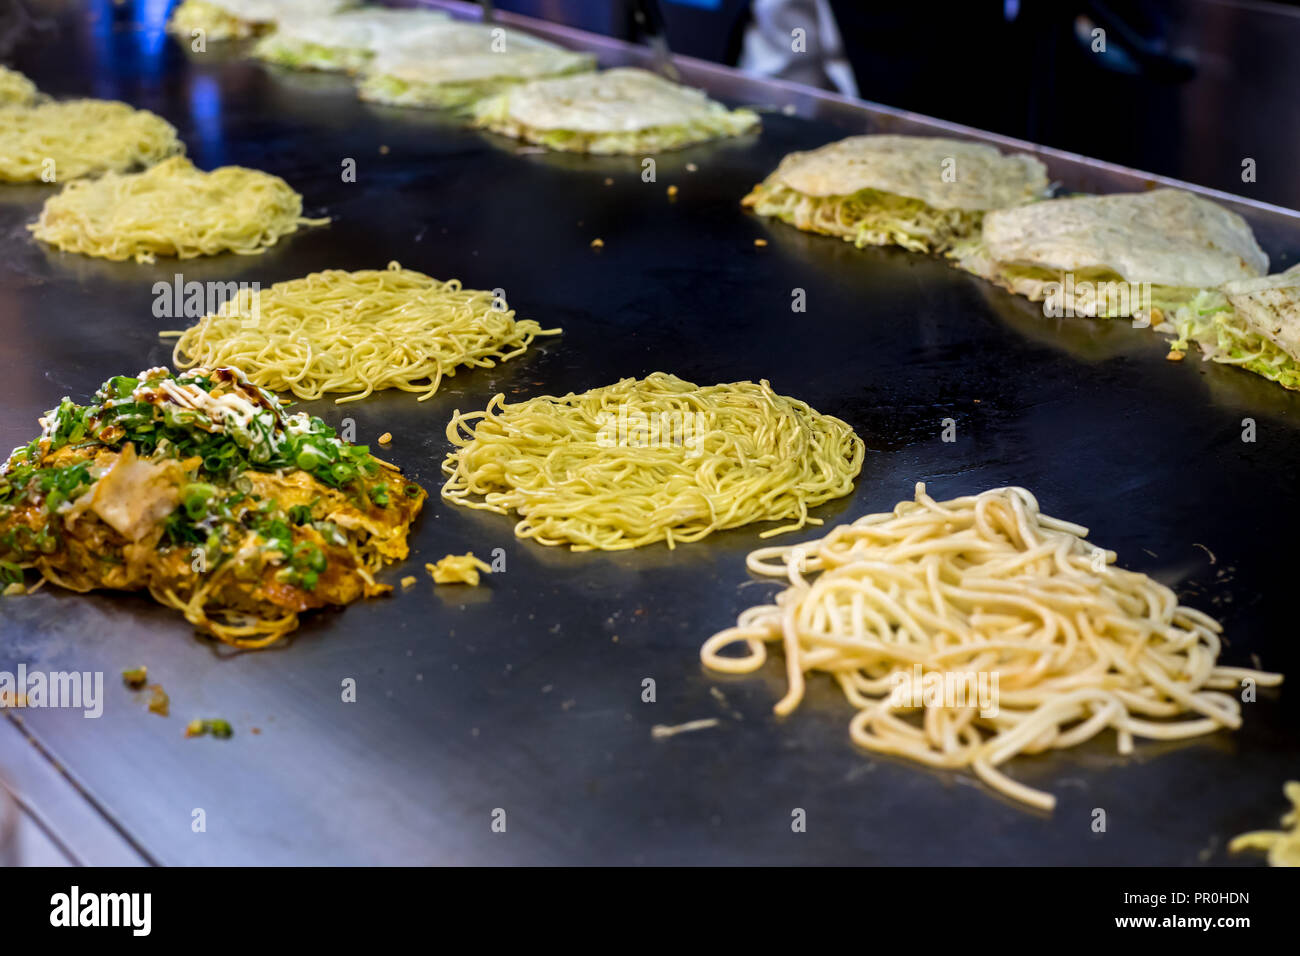 Okonomiyaki being prepared on a large griddle, Hiroshima, Japan, Asia Stock Photo